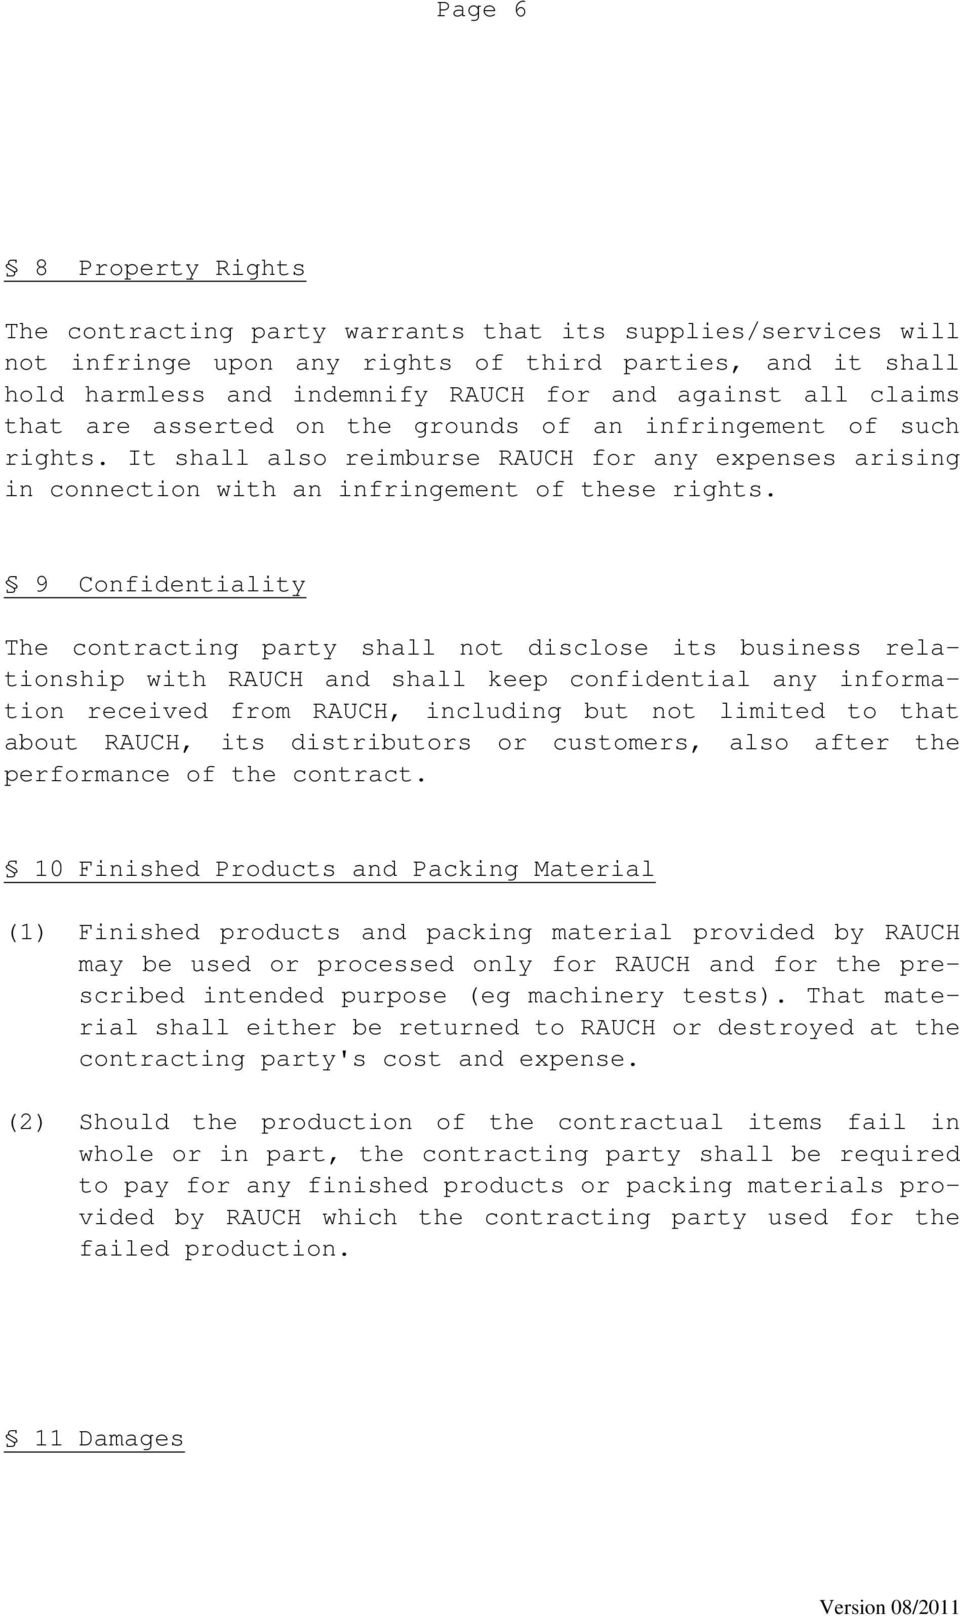 9 Confidentiality The contracting party shall not disclose its business relationship with RAUCH and shall keep confidential any information received from RAUCH, including but not limited to that